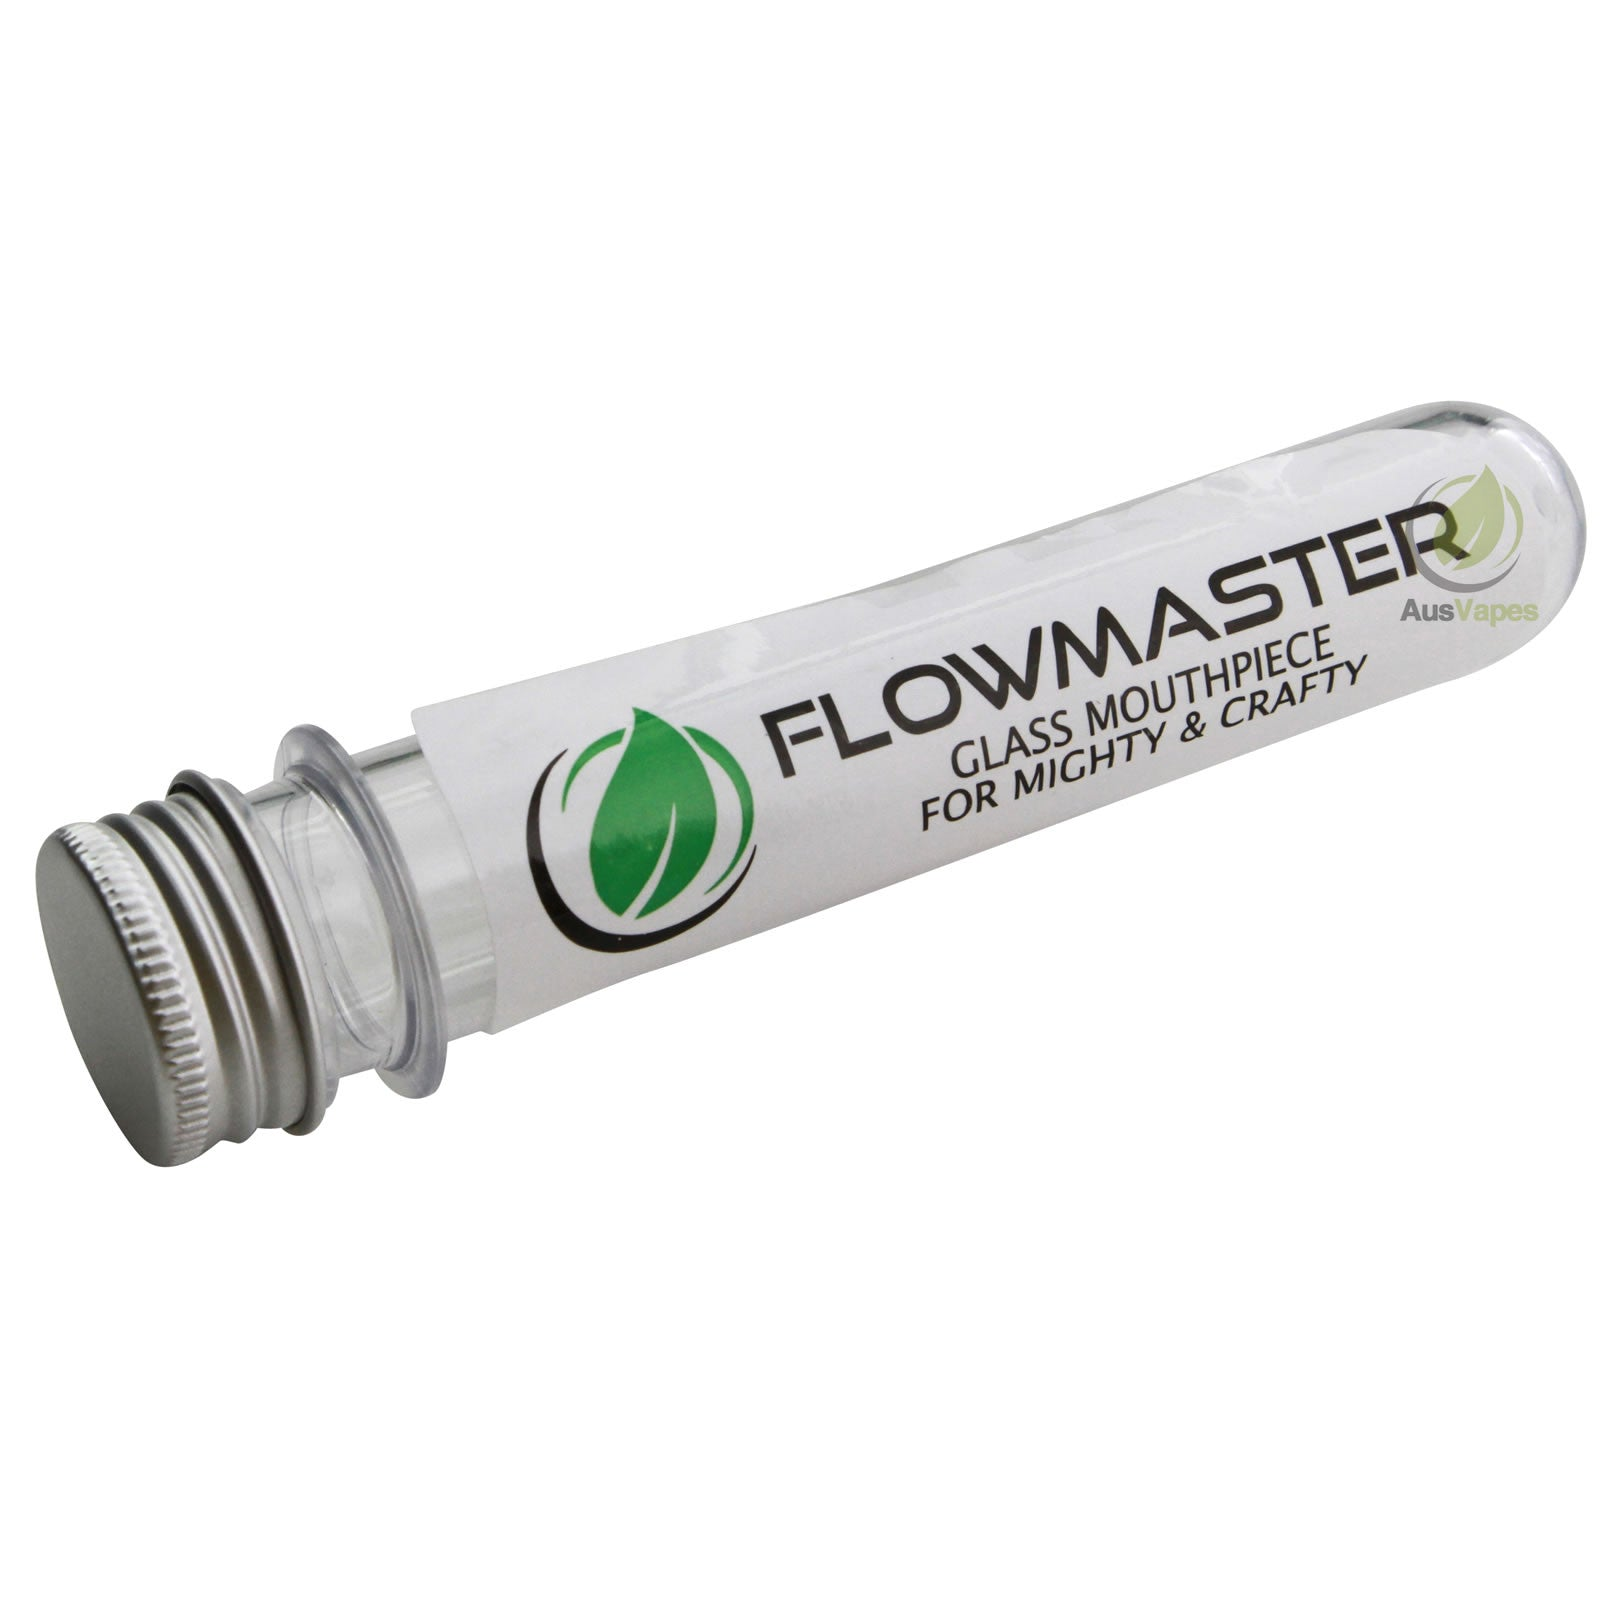 Crafty & Mighty FlowMaster Glass Mouthpiece